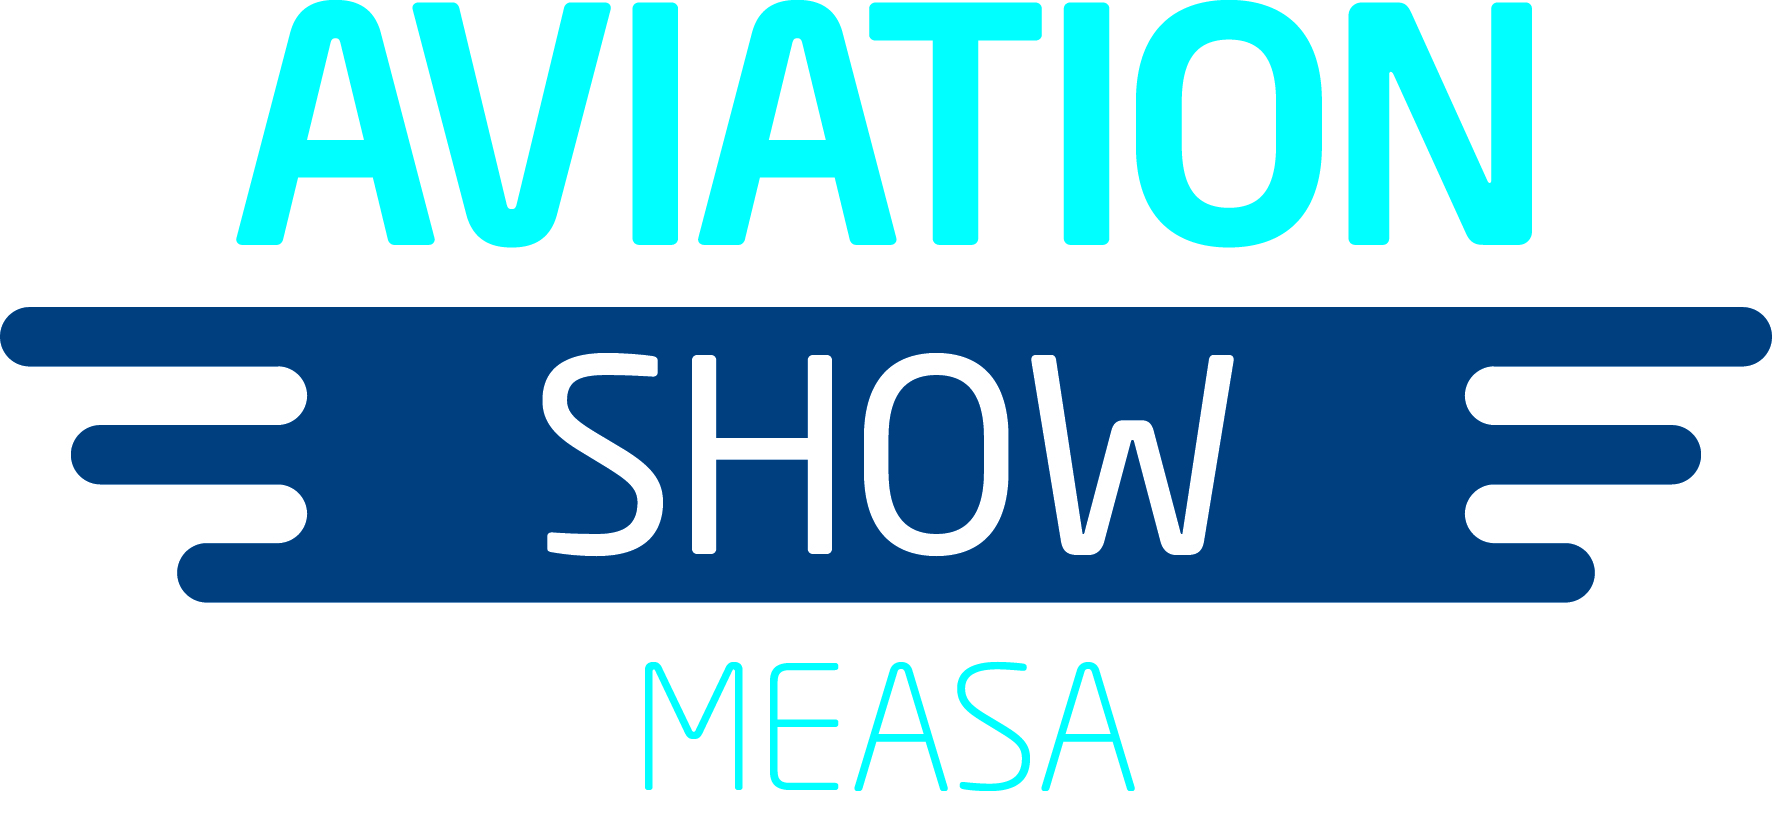 Aviation Show MEASA.jpg